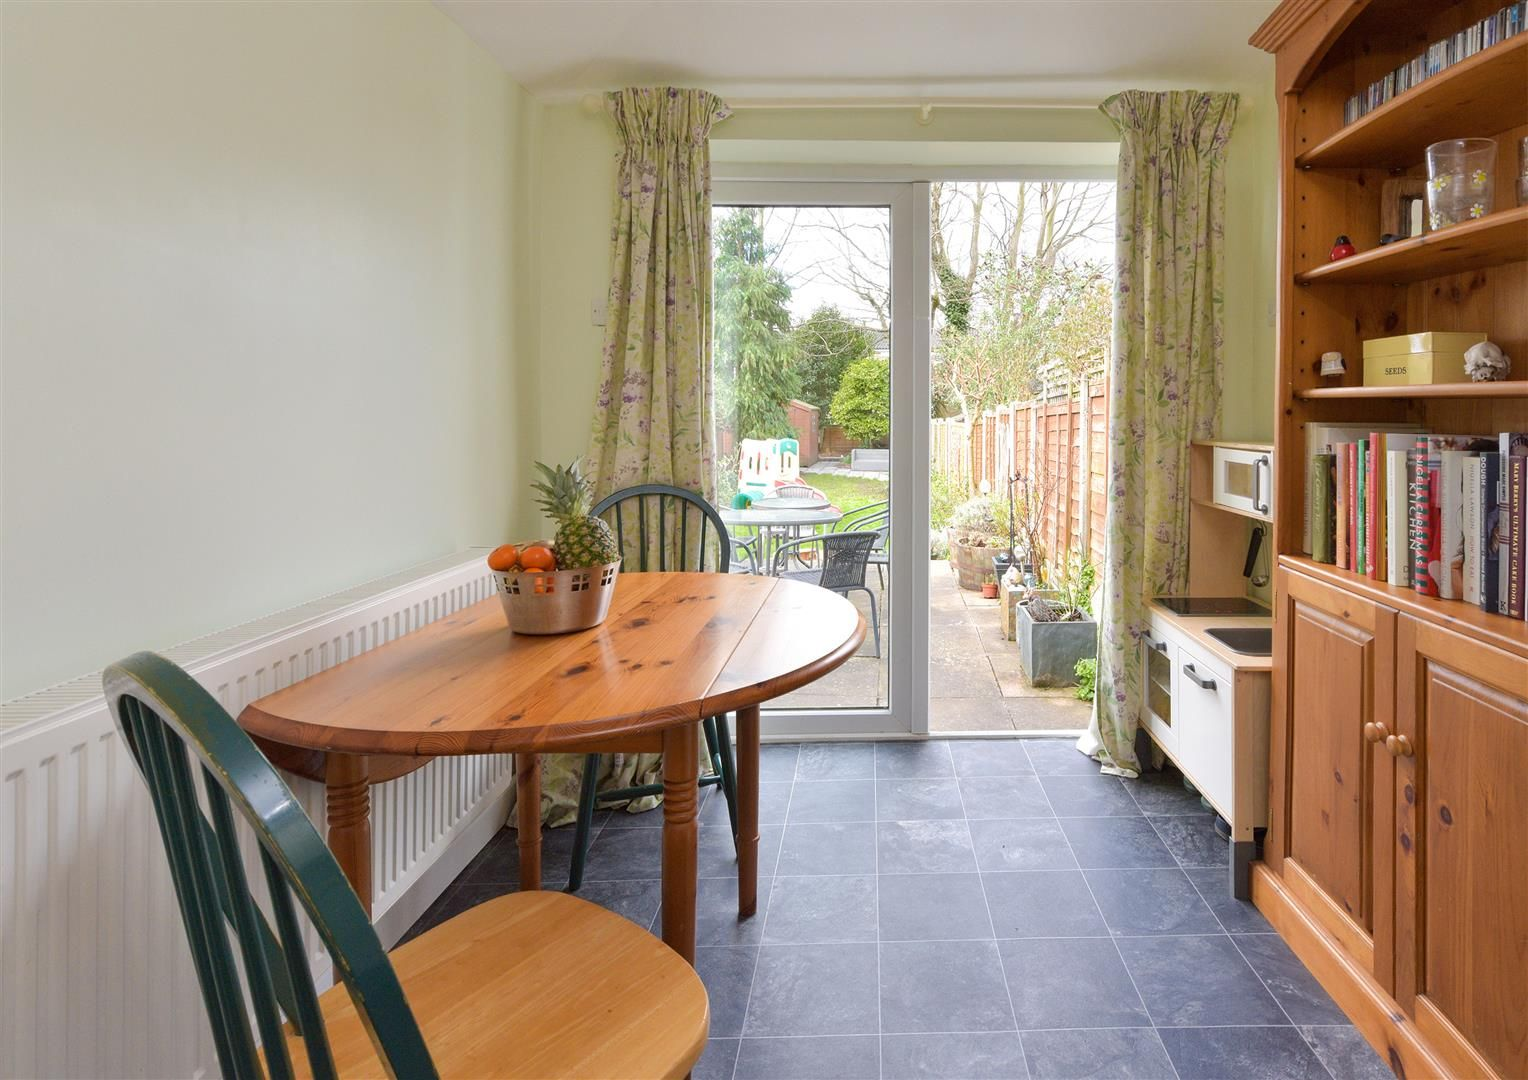 3 bed end-of-terrace for sale  - Property Image 8